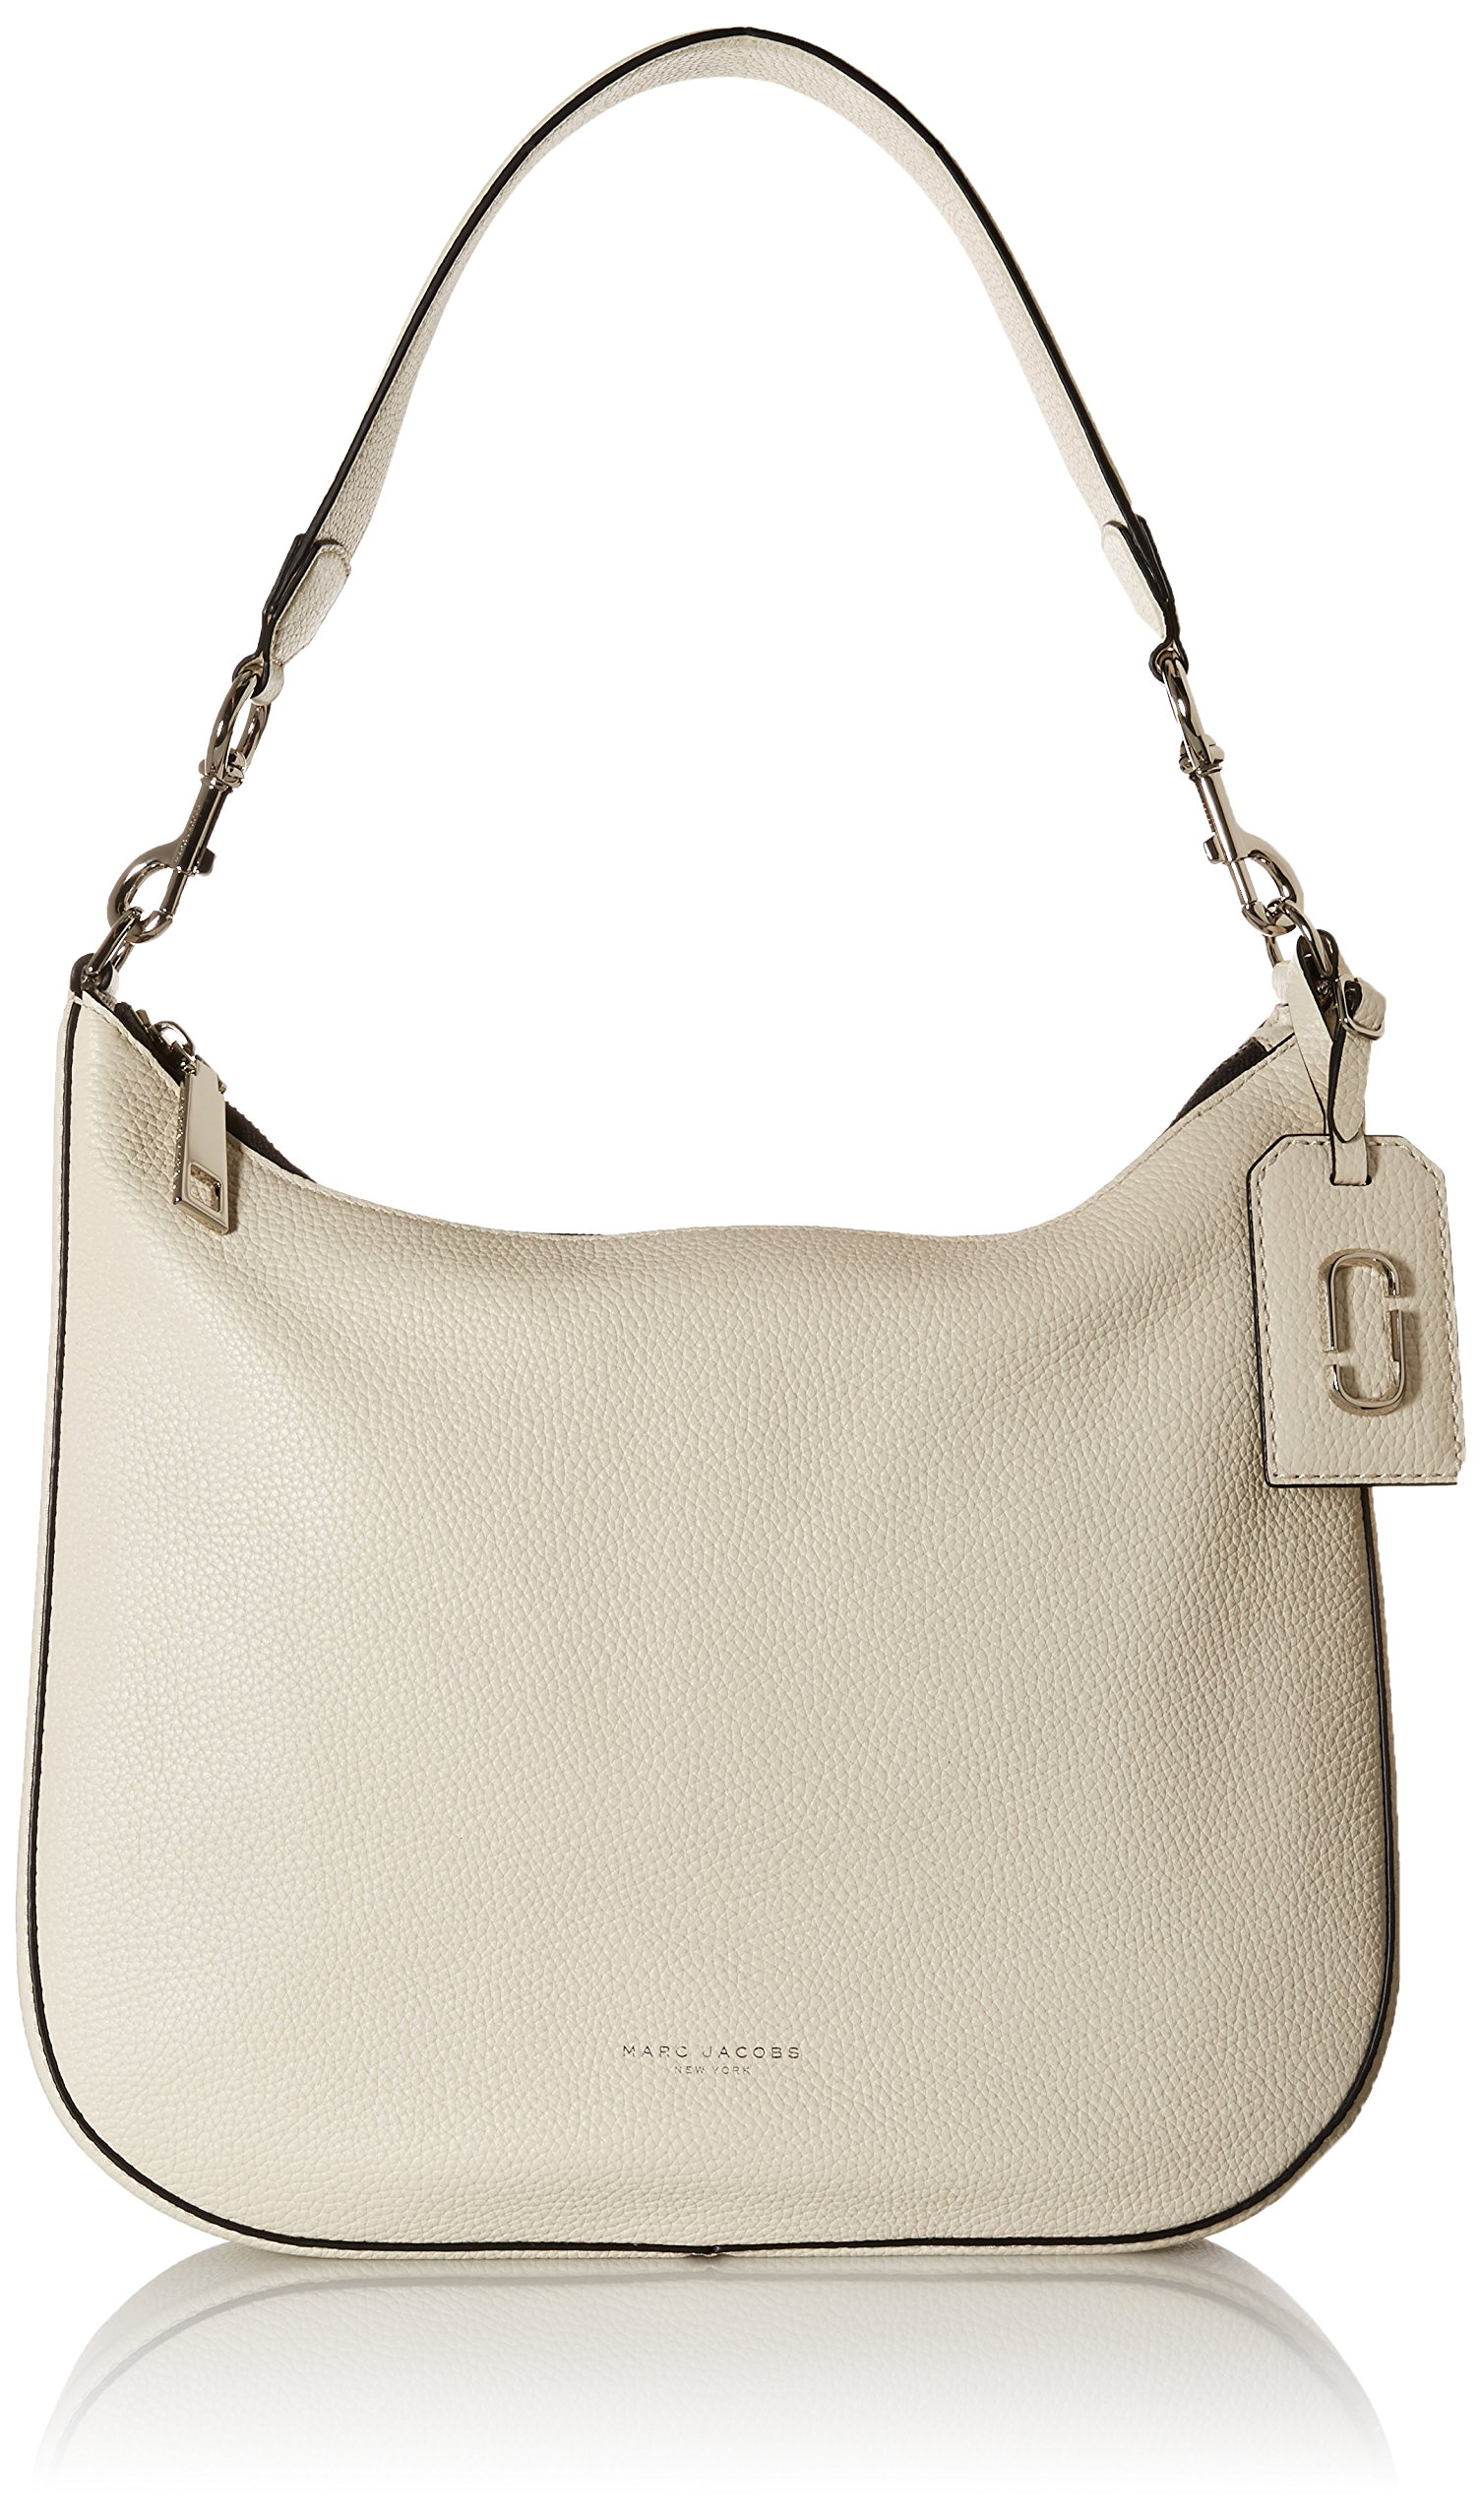 Marc Jacobs Gotham City Hobo Shoulder Bag, Off White, One Size